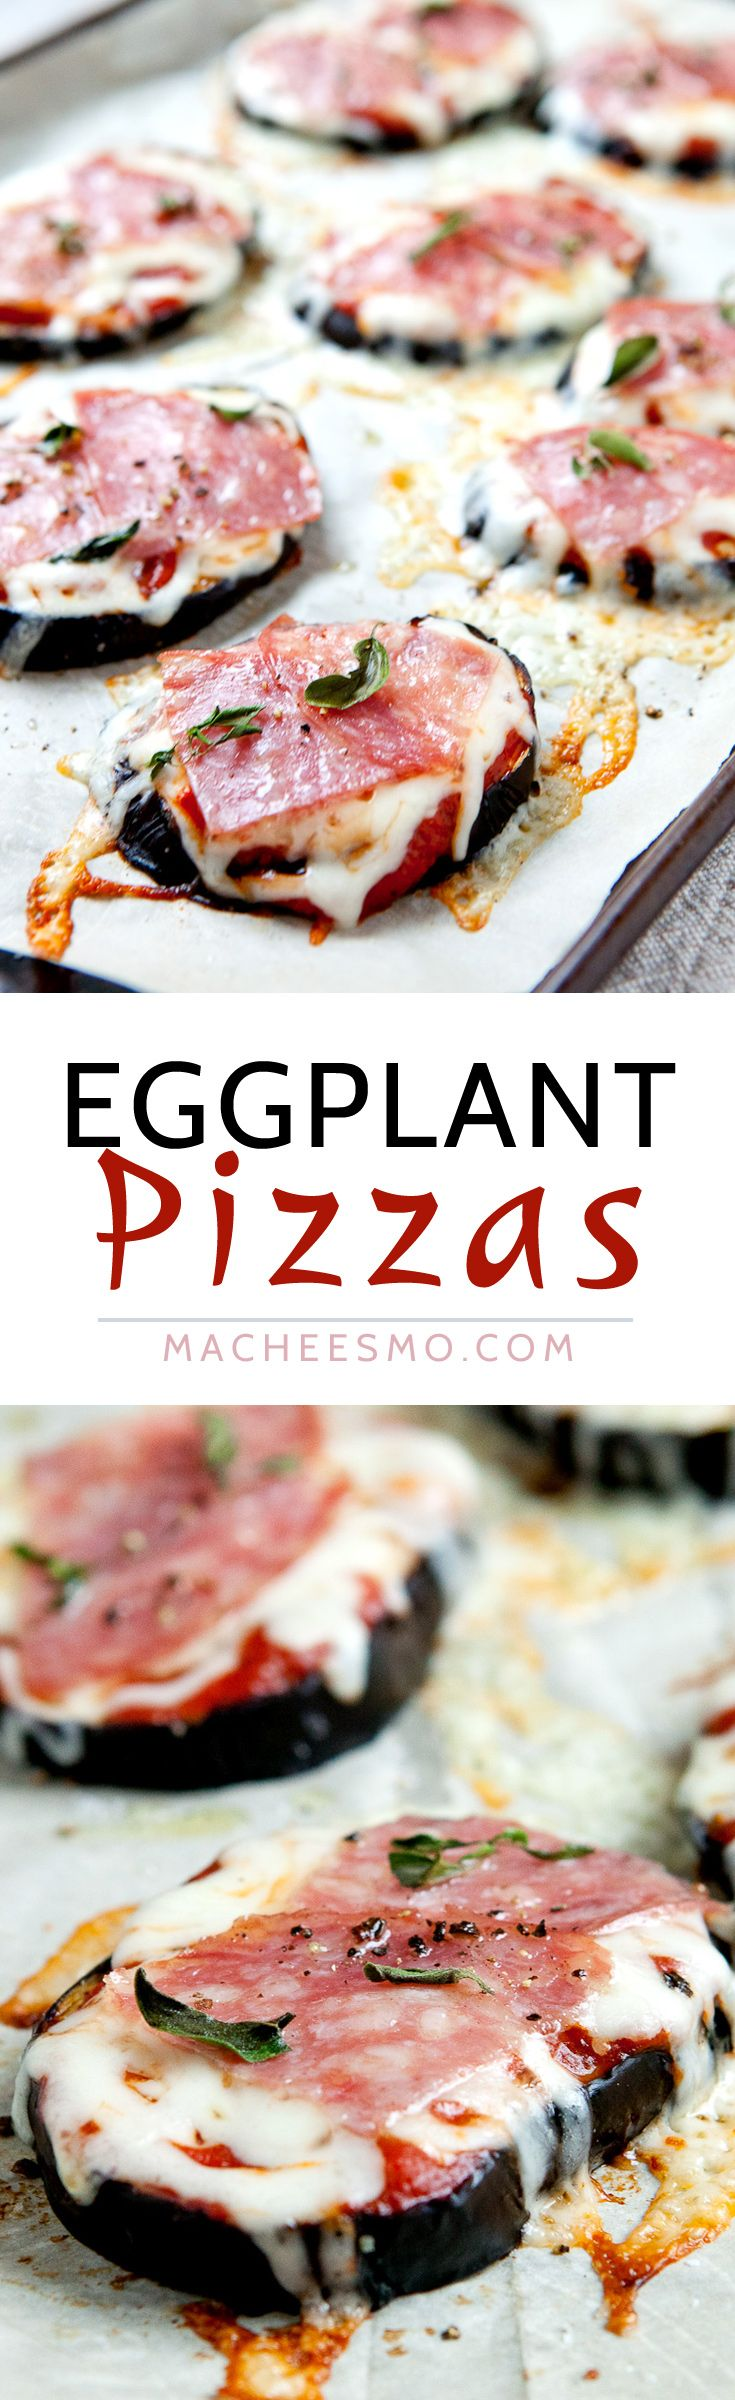 Easy Eggplant Pizzas: Baked eggplant rounds topped with easy pizza toppings like cheese, pepperoni, and oregano. A great quick, warm snack! | macheesmo.com